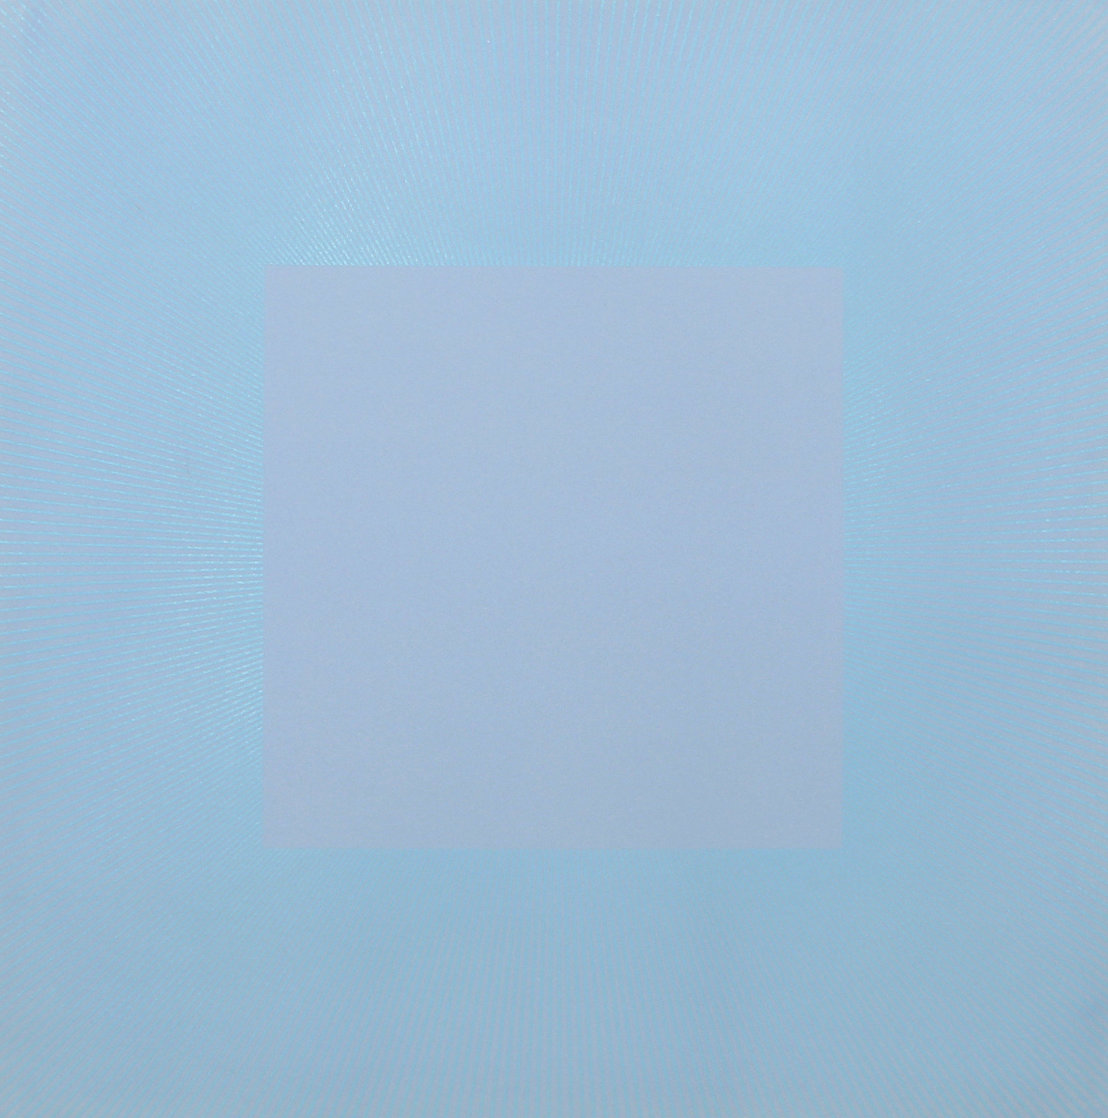 Winter Suite (Light Blue with Light Blue) 1979 Limited Edition Print by Richard Anuszkiewicz